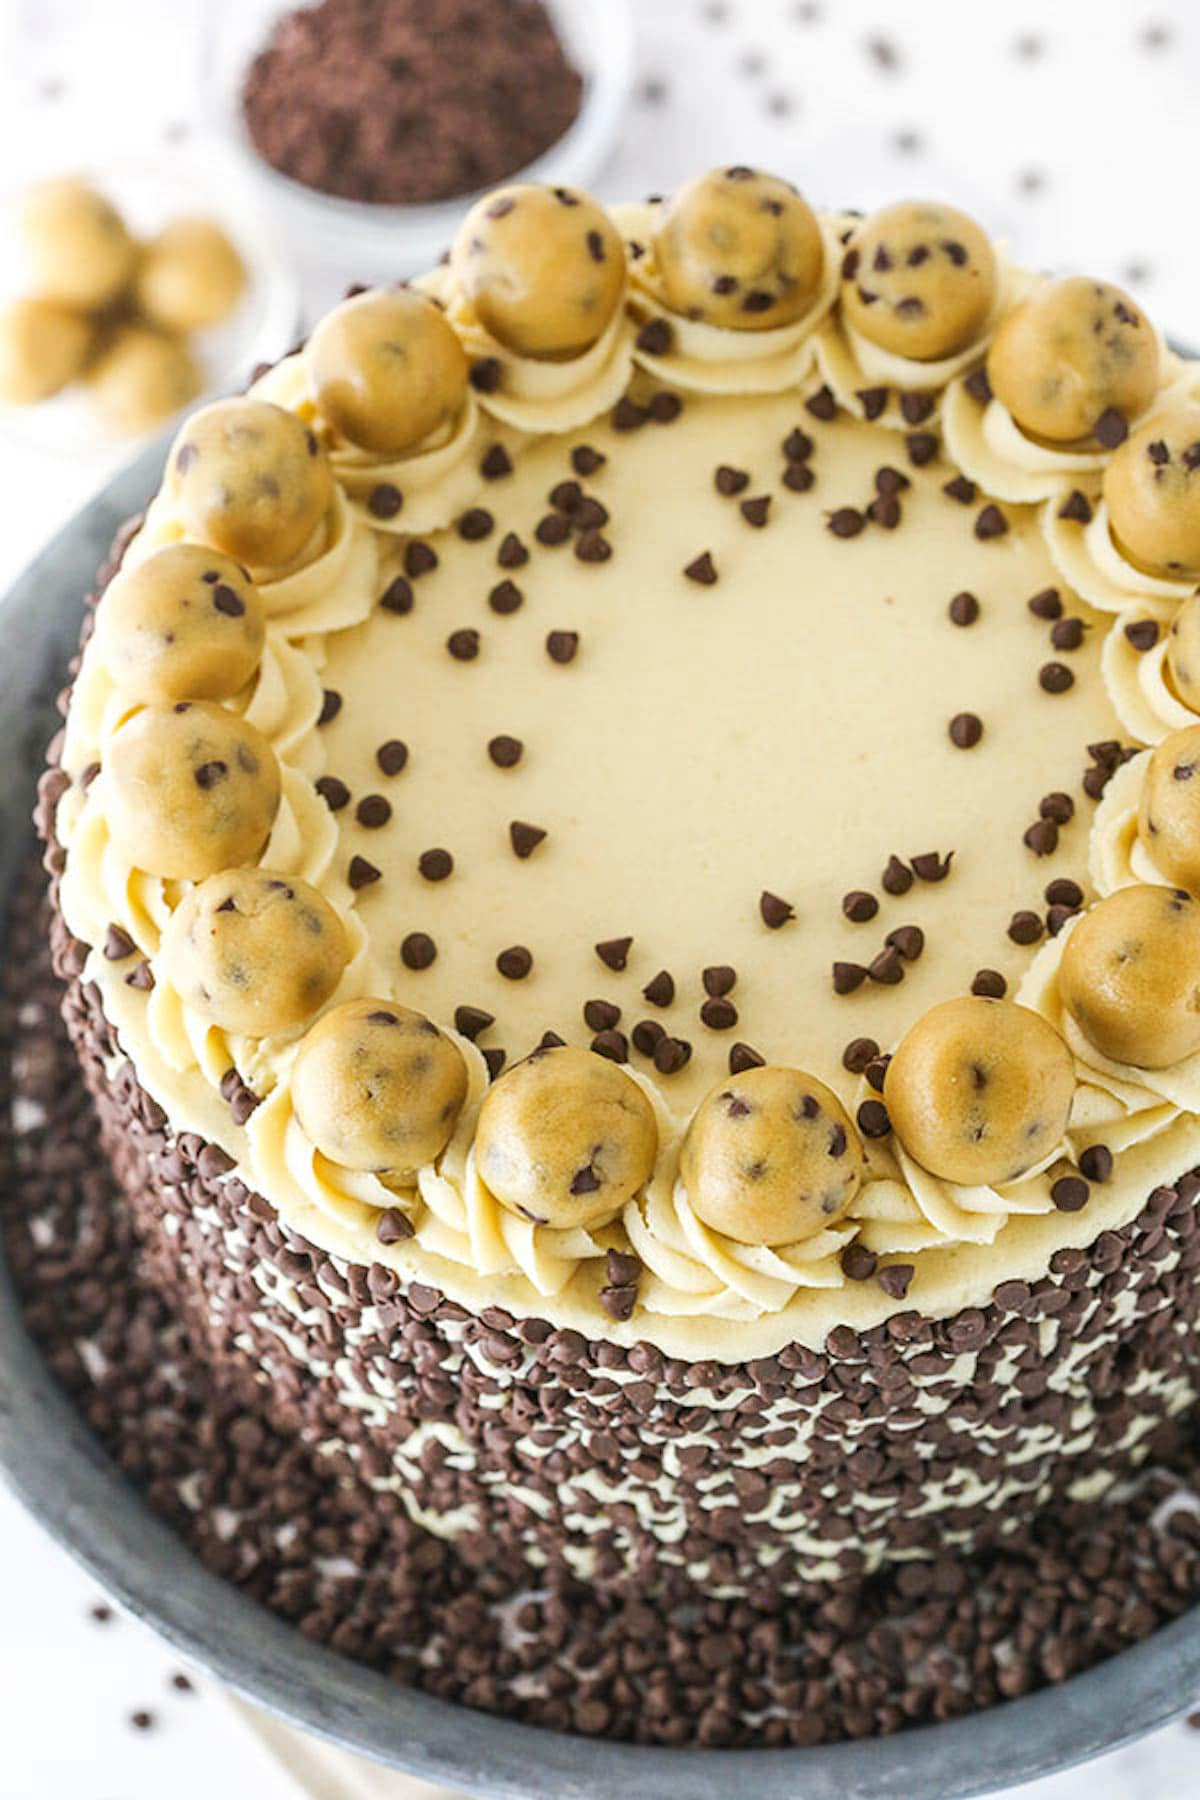 A Cookie Dough Layer Cake with Cookie Dough Frosting, Chocolate Chips and Balls of Dough on Top